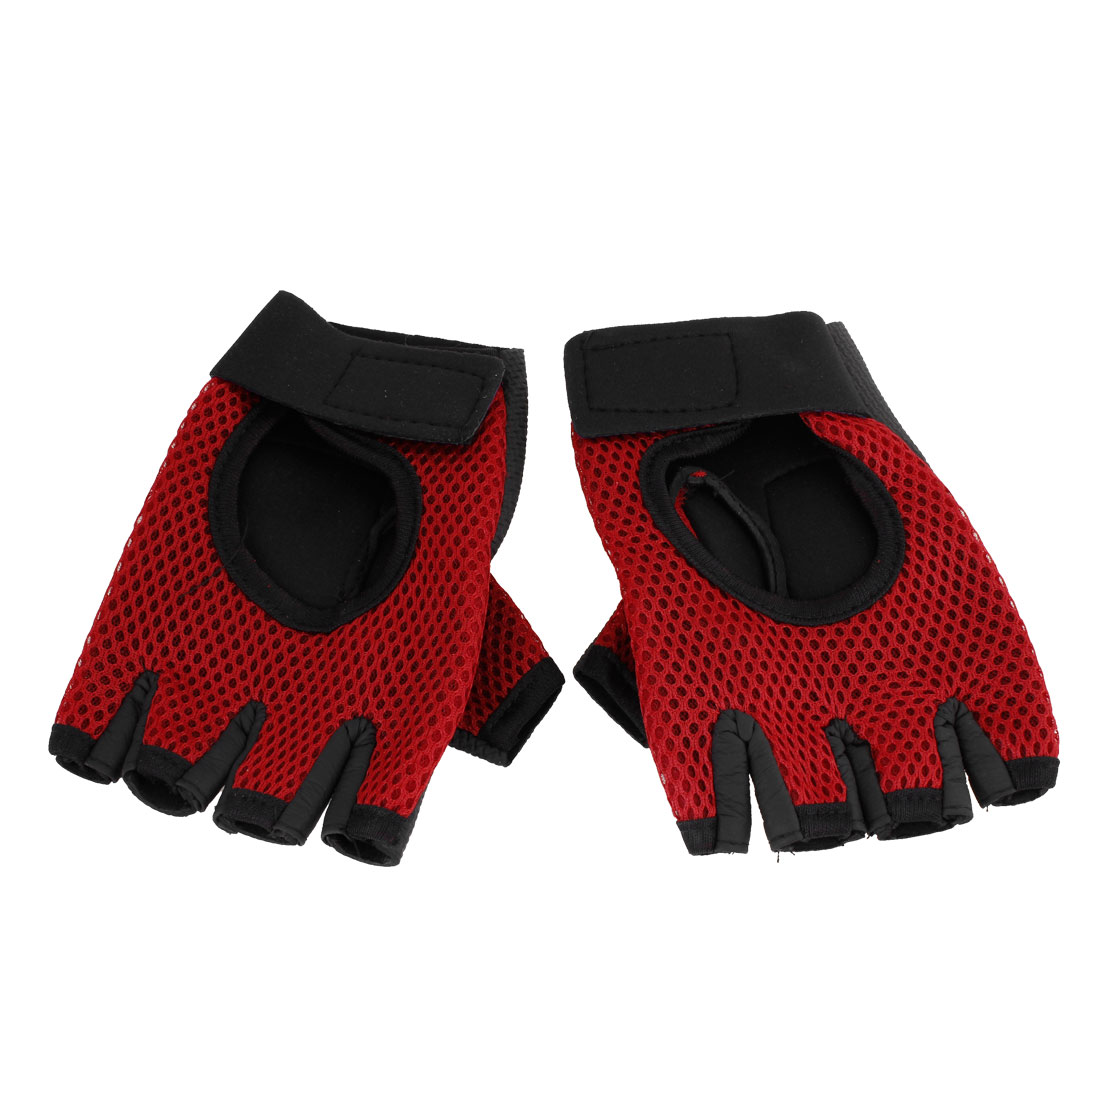 Pair Red Black Detachable Wrist Band Meshy Sports Gloves Supports